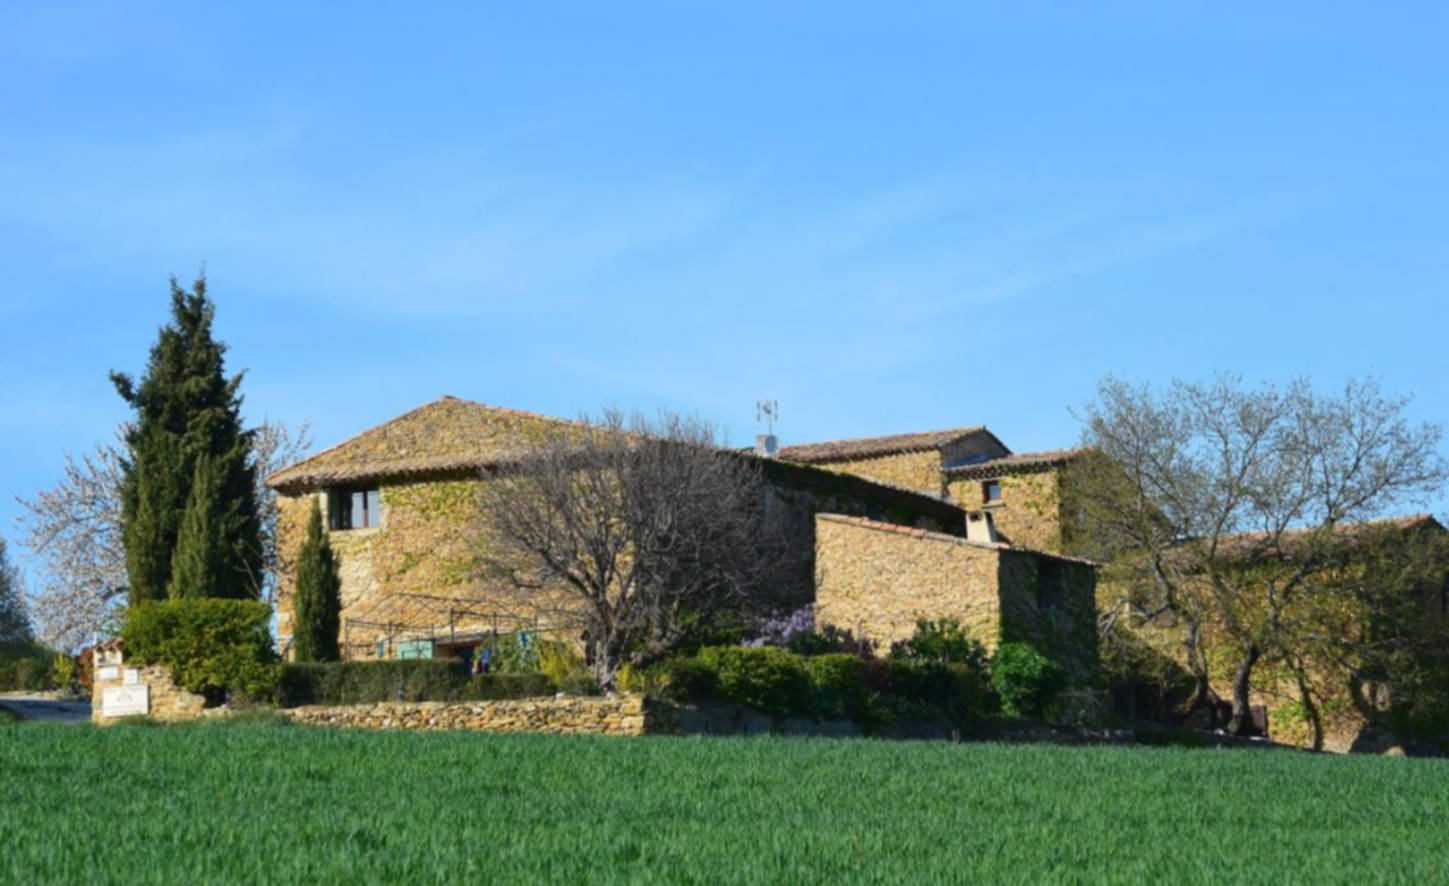 A large brick building with a grassy field at LES GRANDES MOLLIERES.